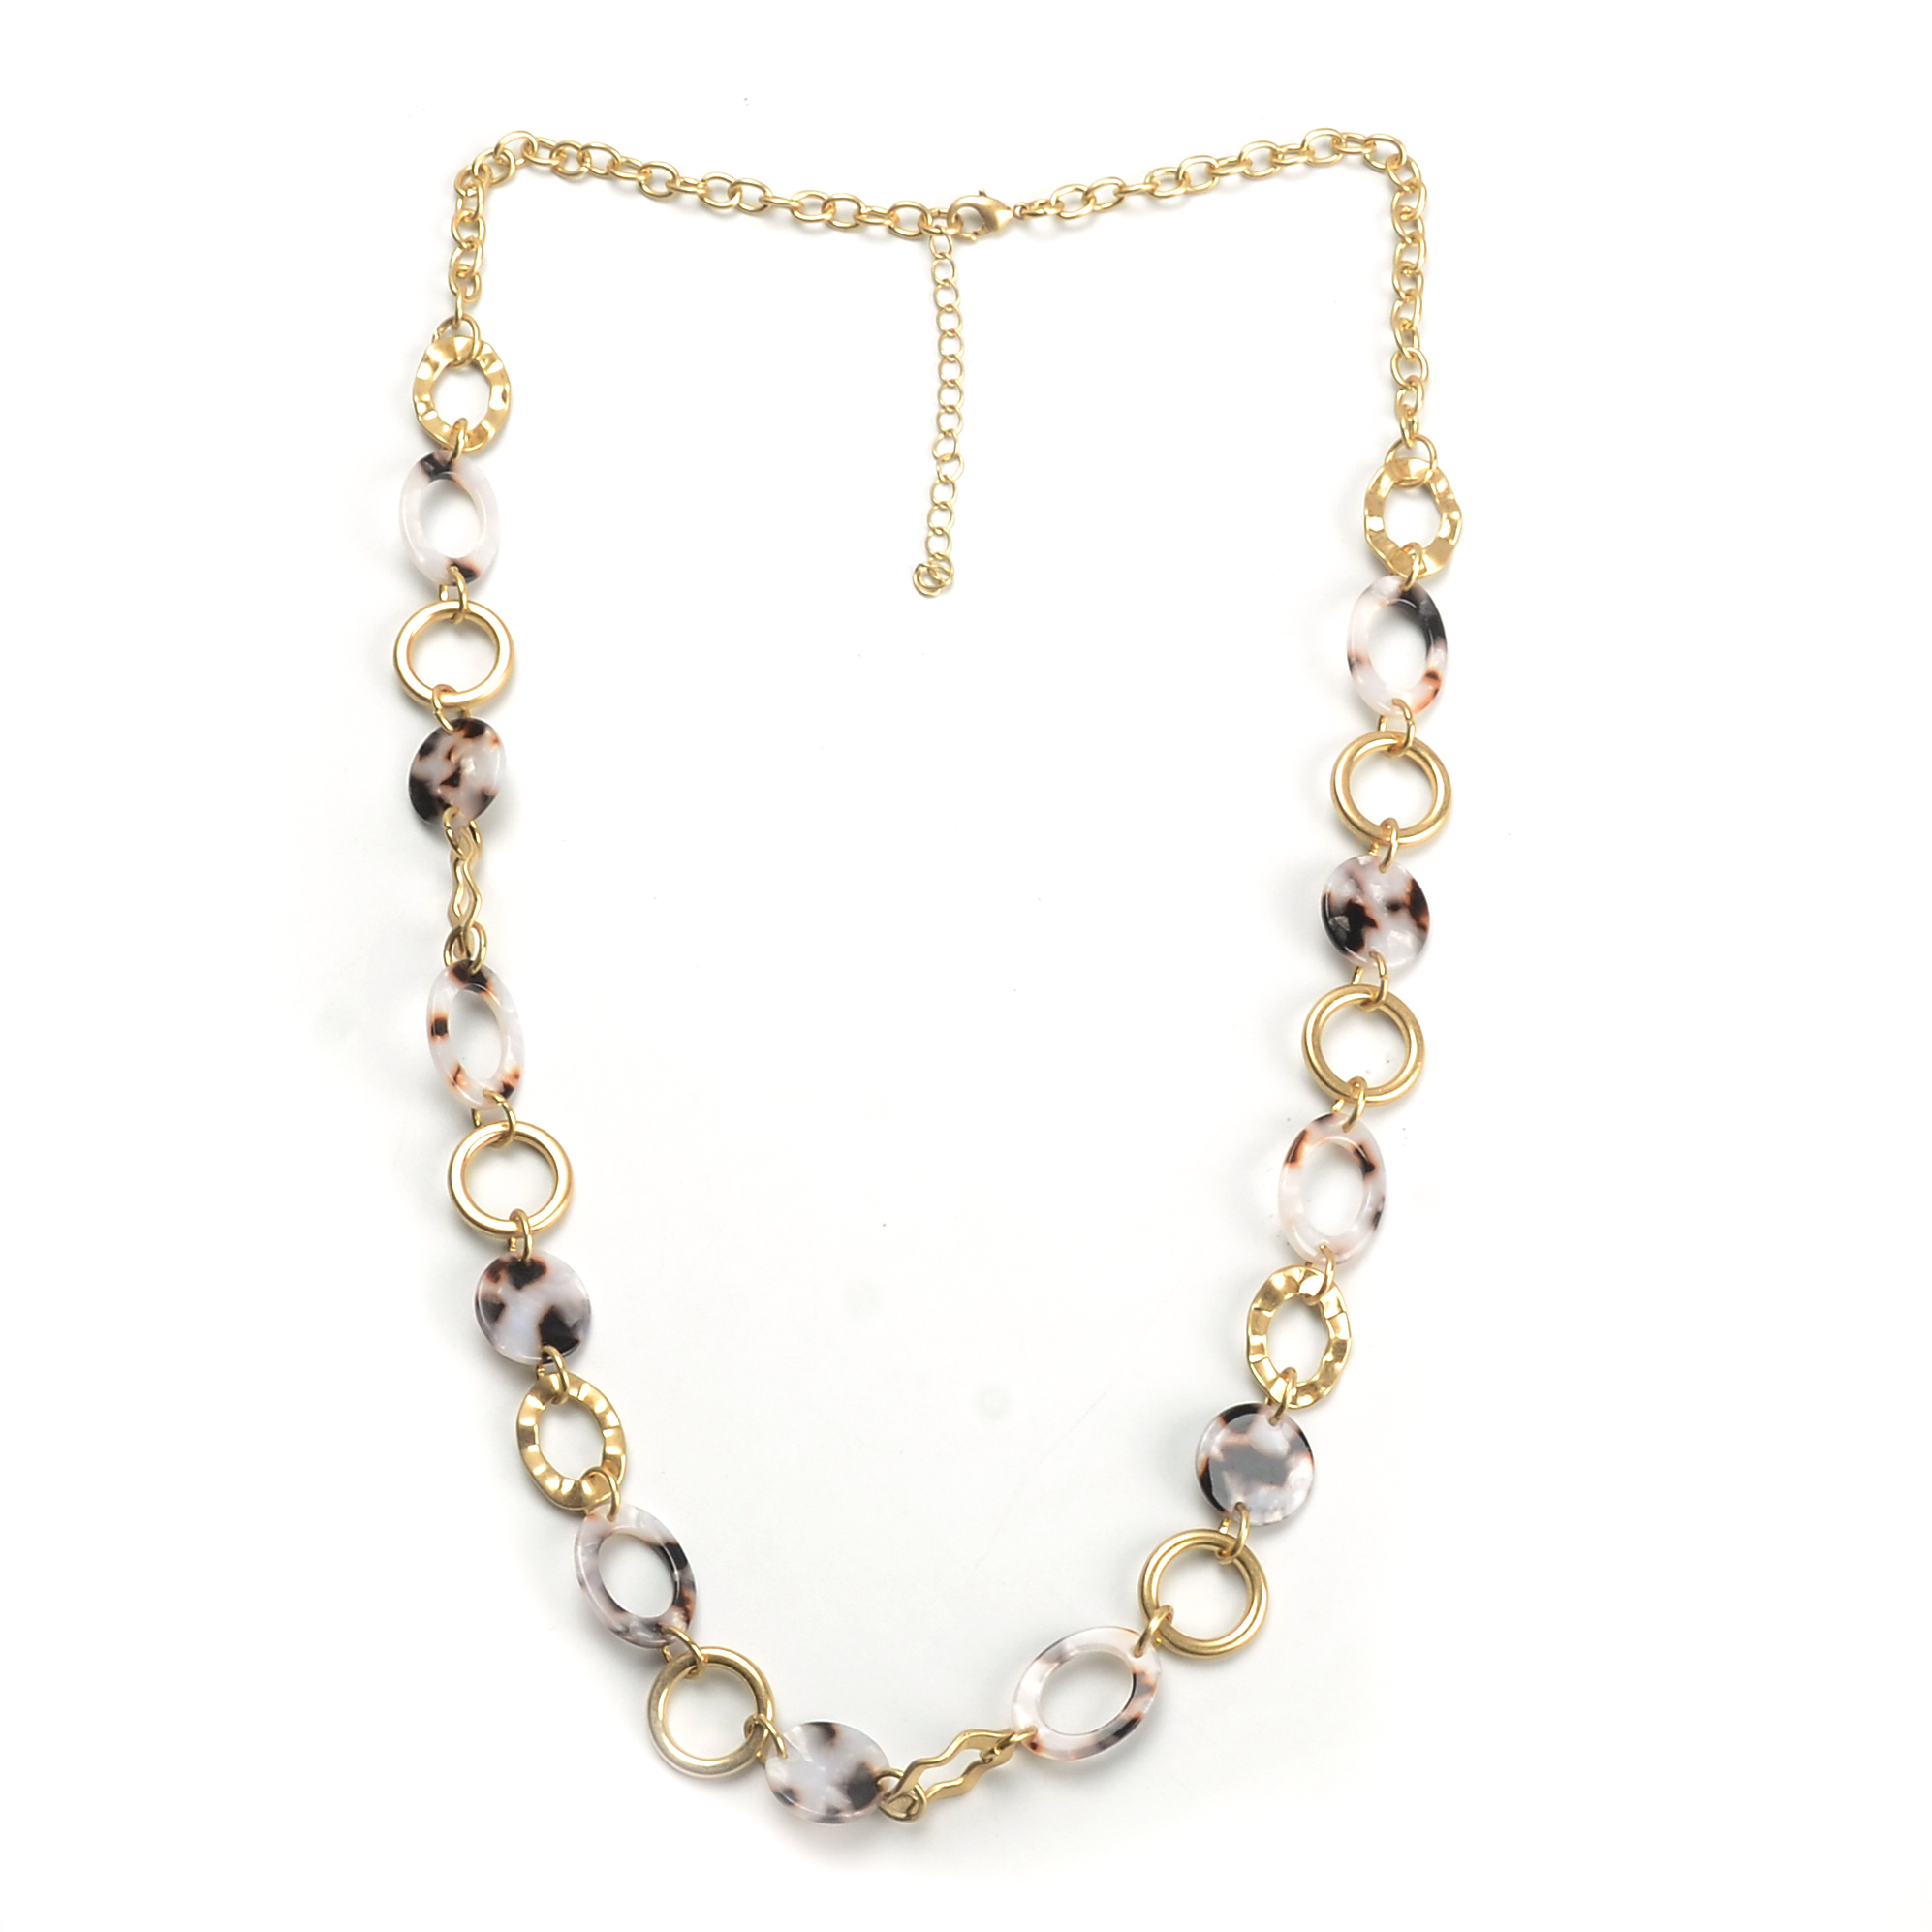 WENZHE Fashion necklace long chain acrylic acetate necklace for women party gifts Featured Image